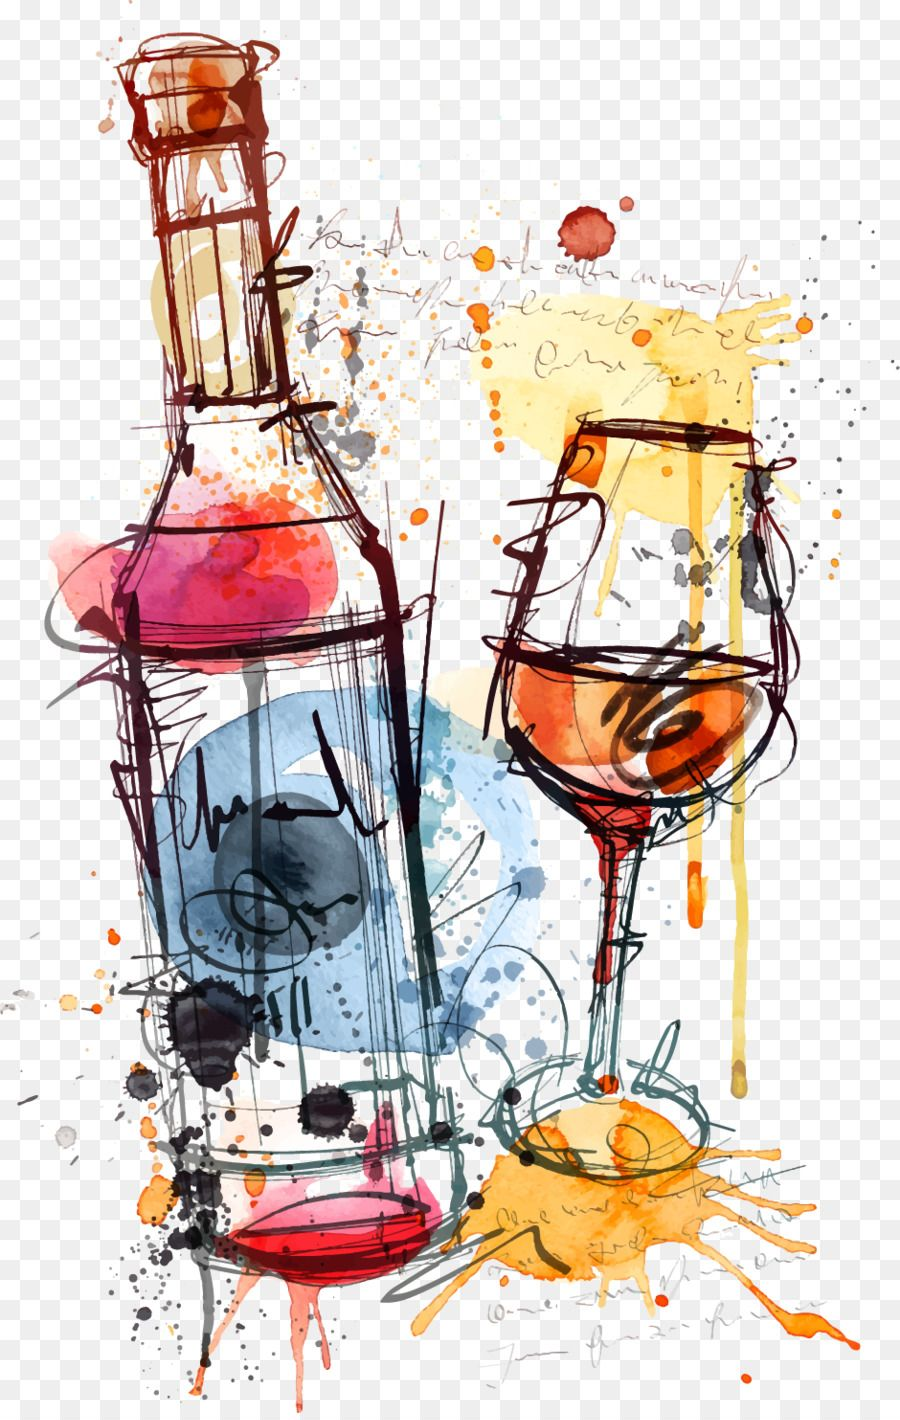 Red Wine Bottle Rosé Clip art Watercolor wine glass and